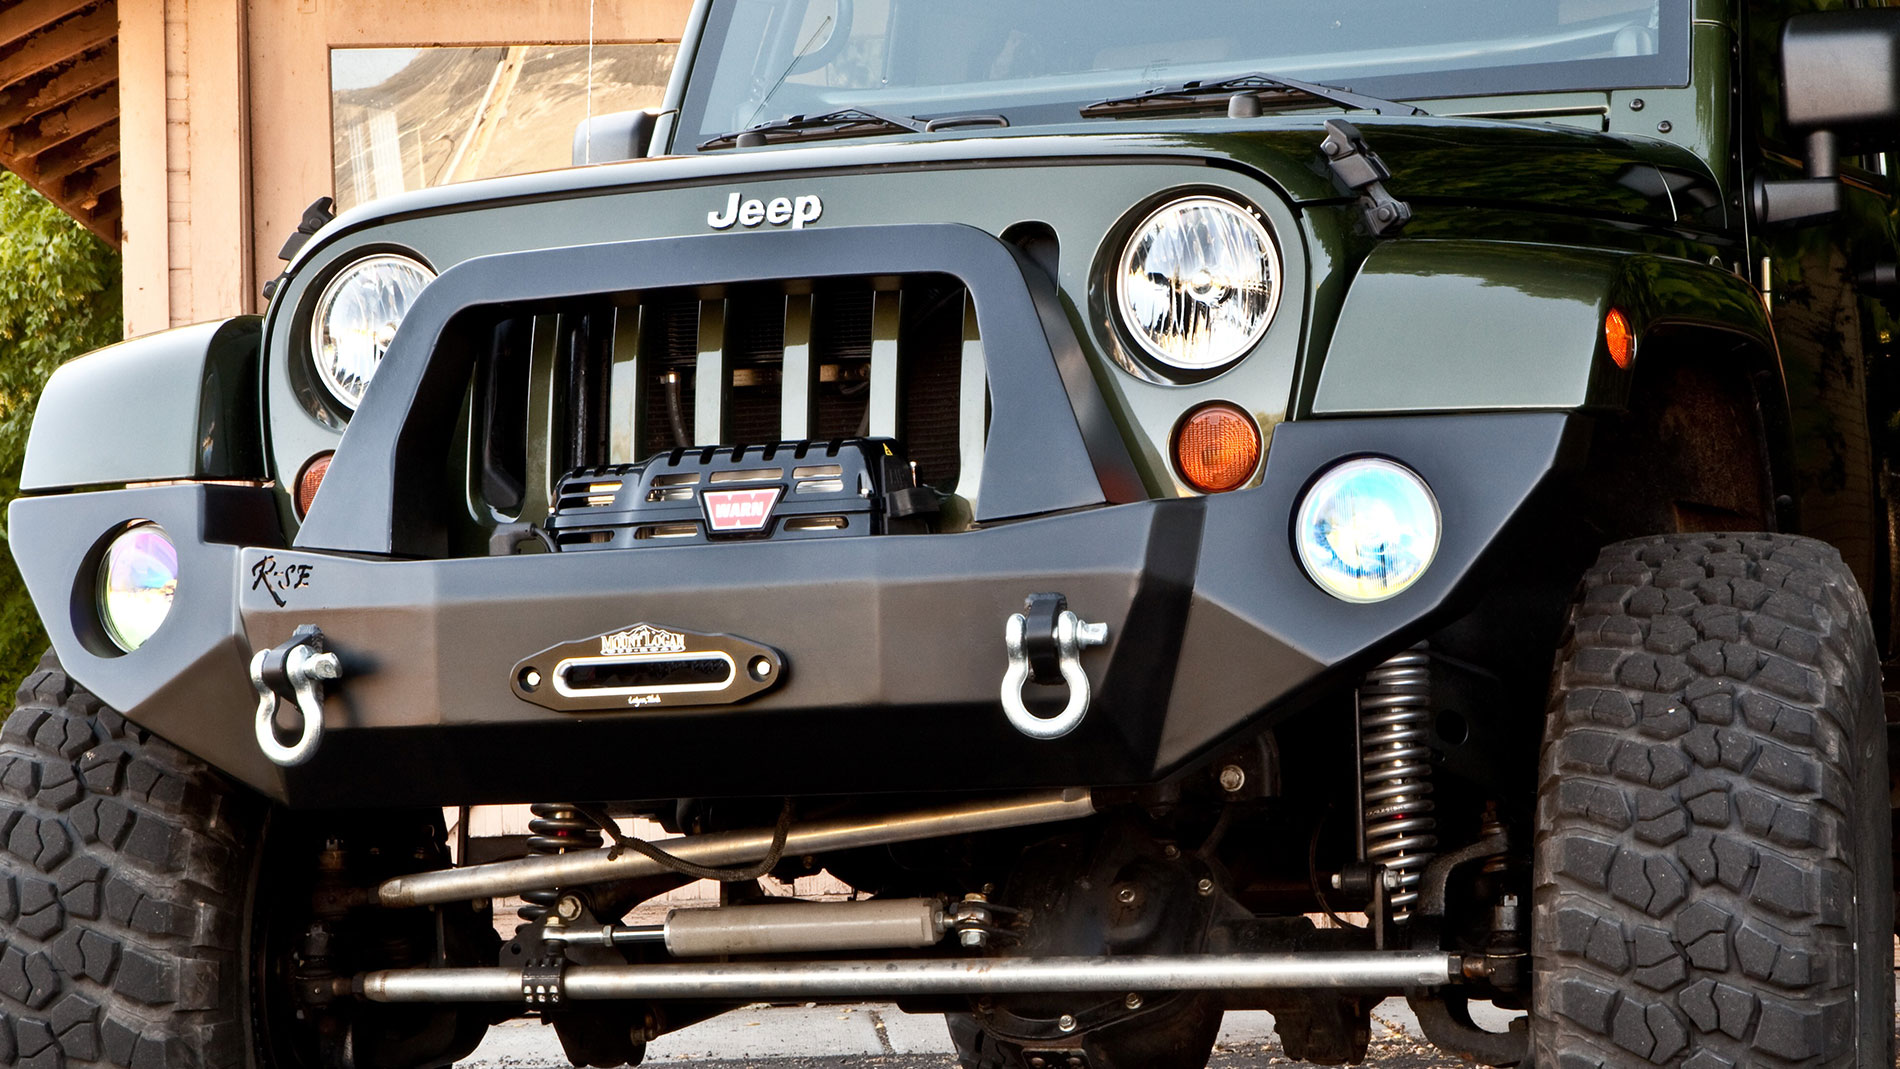 lease of enthusiast best deals leases prices jeep beautiful